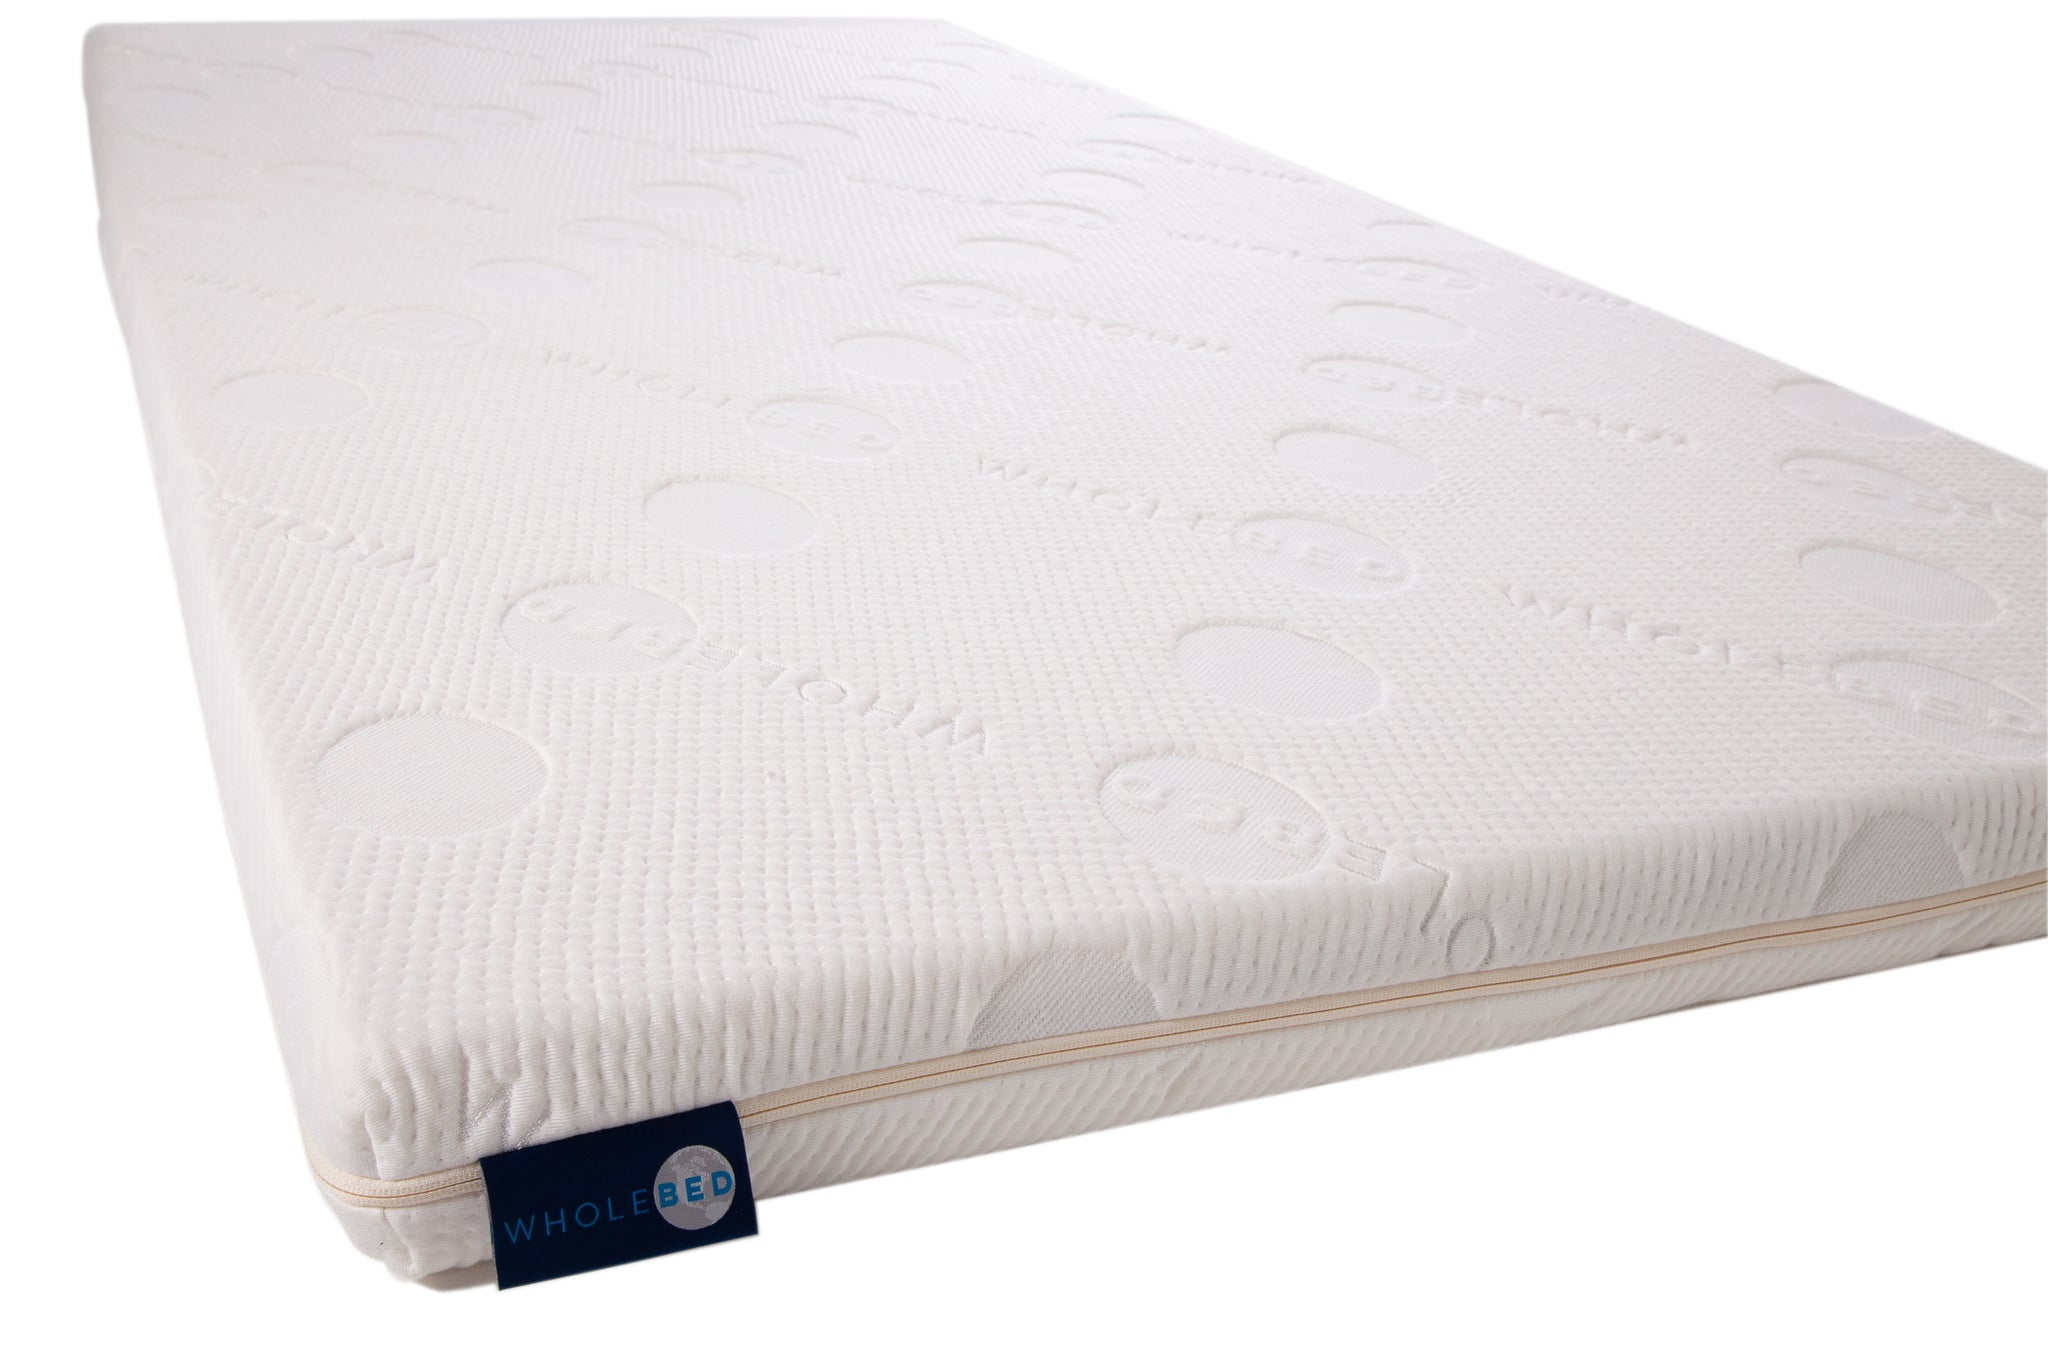 "6.  THE WHOLE TOPPER -- 3"" TWIN XL Size All Natural Mattress Topper"